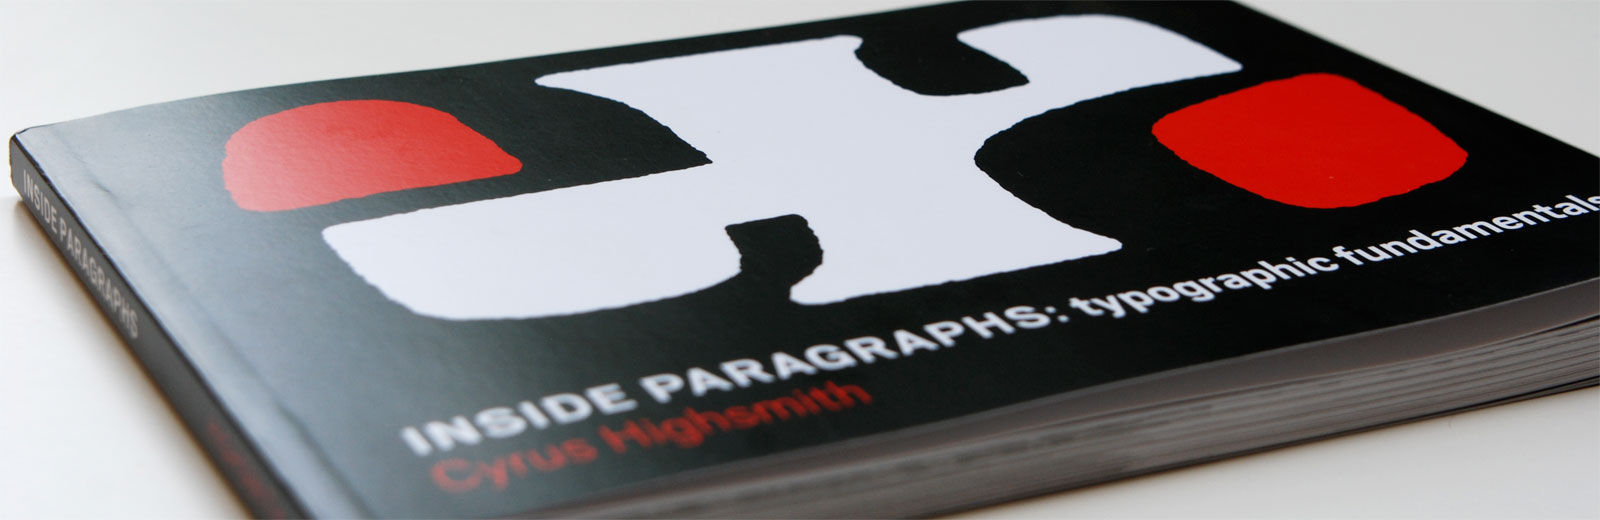 Inside Paragraphs cover